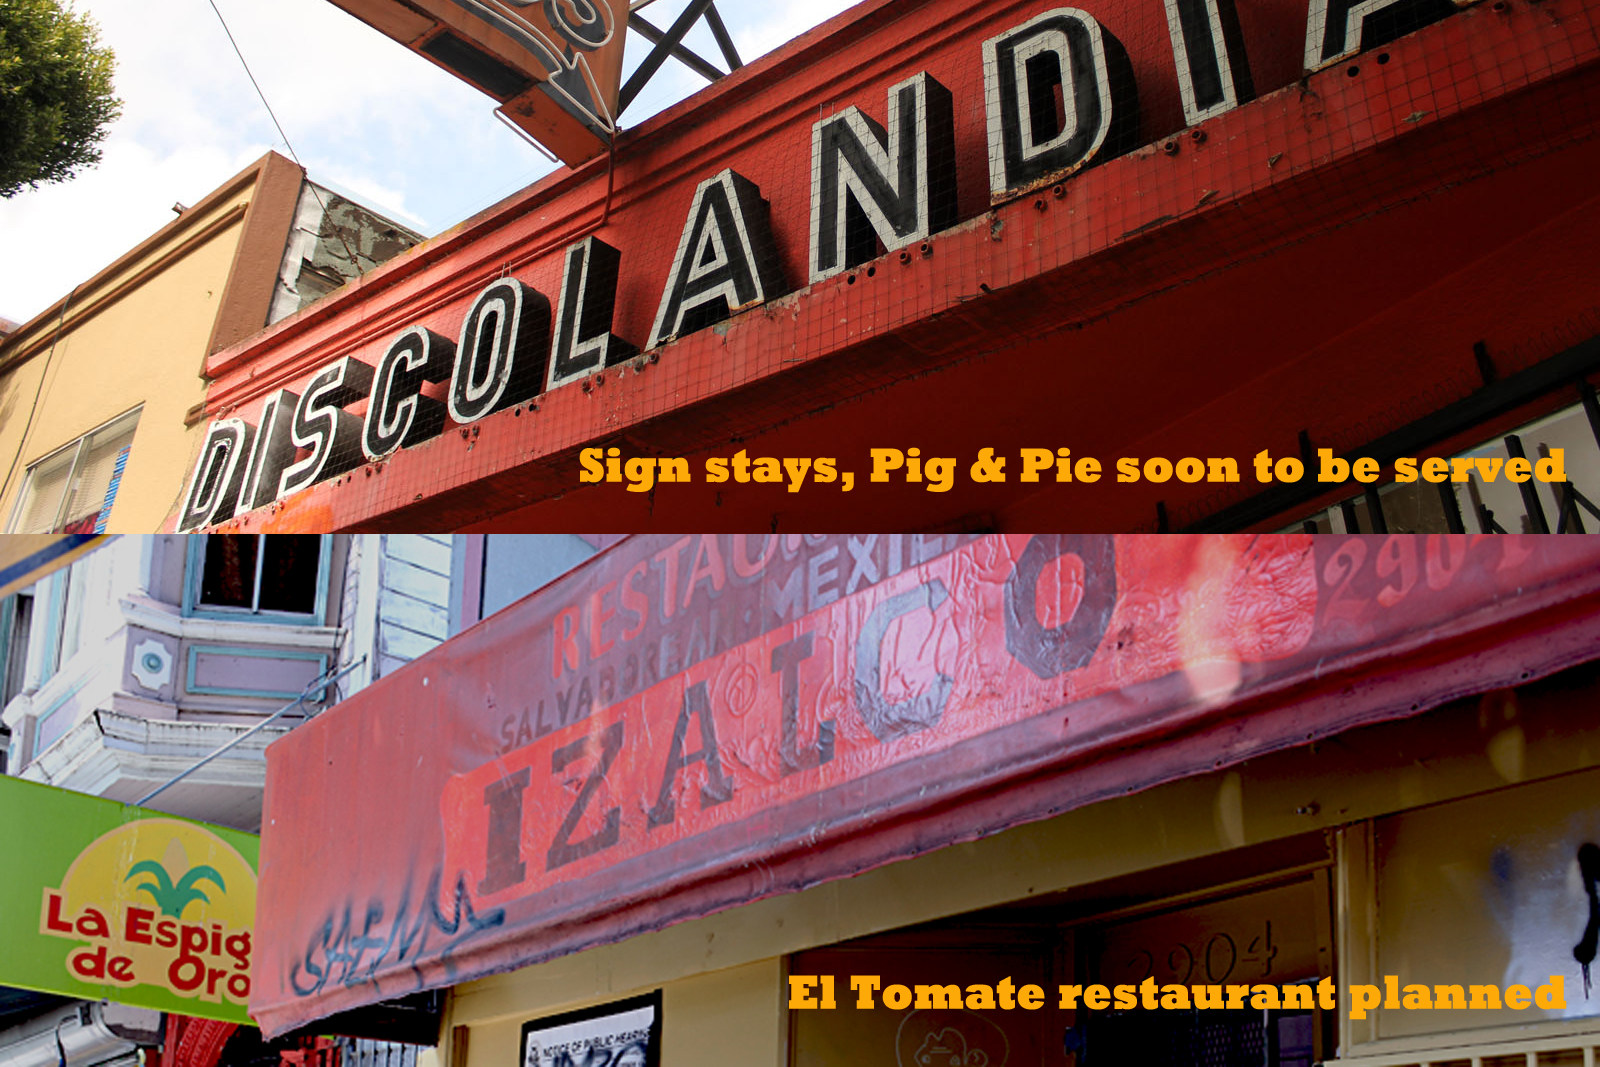 Discolandia Sign Stays, Two New Eateries Planned